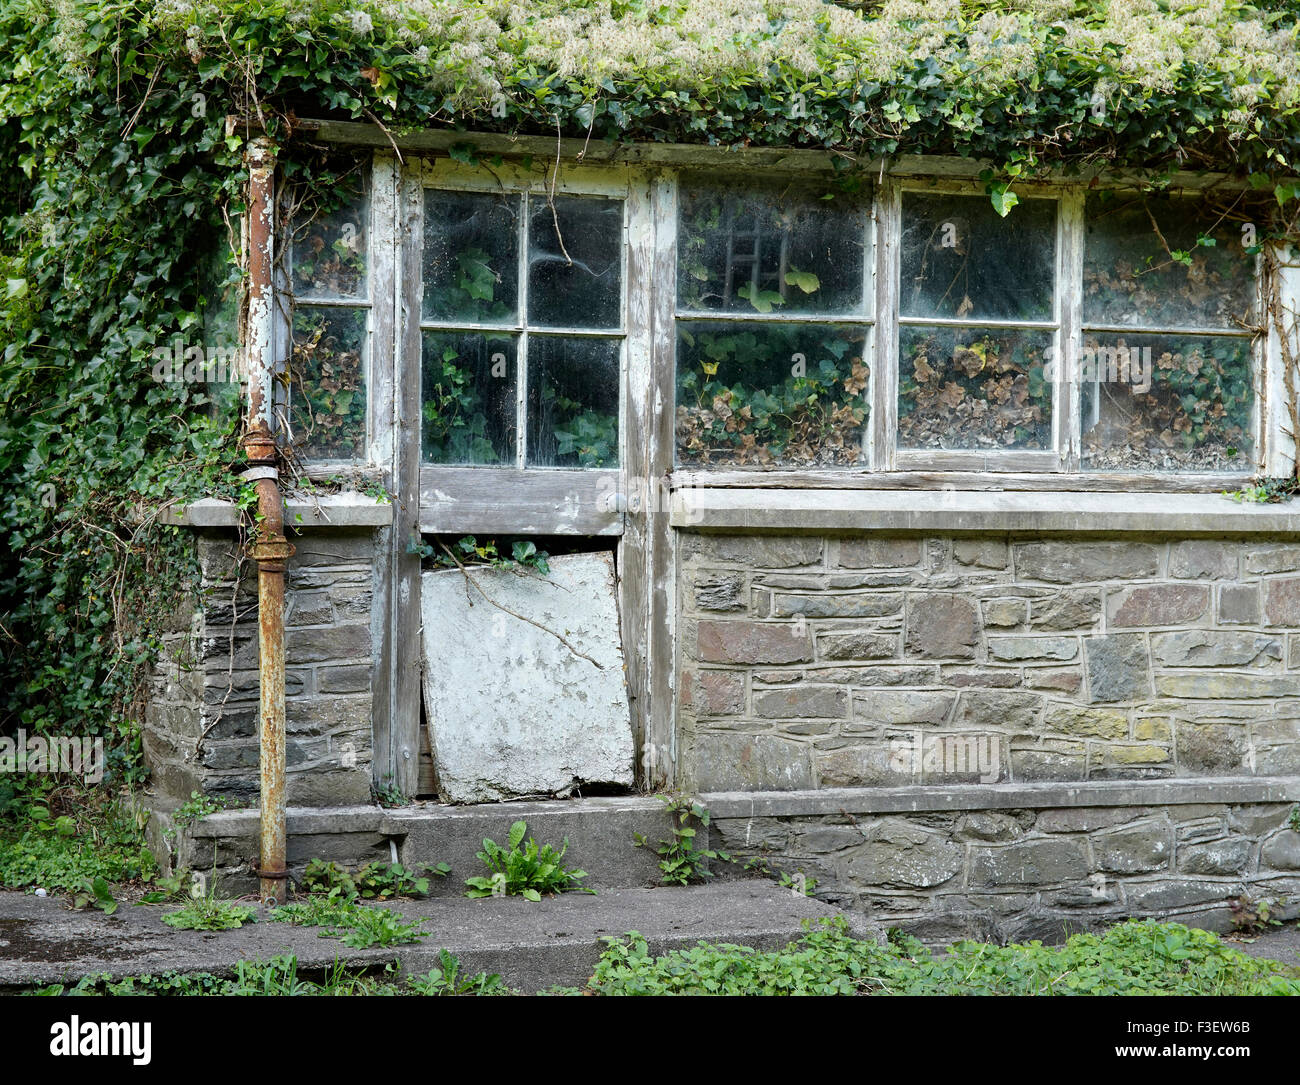 An old greenhouse garden room overrun with Russian Vine, Lynmouth, North Devon, England, UK. - Stock Image